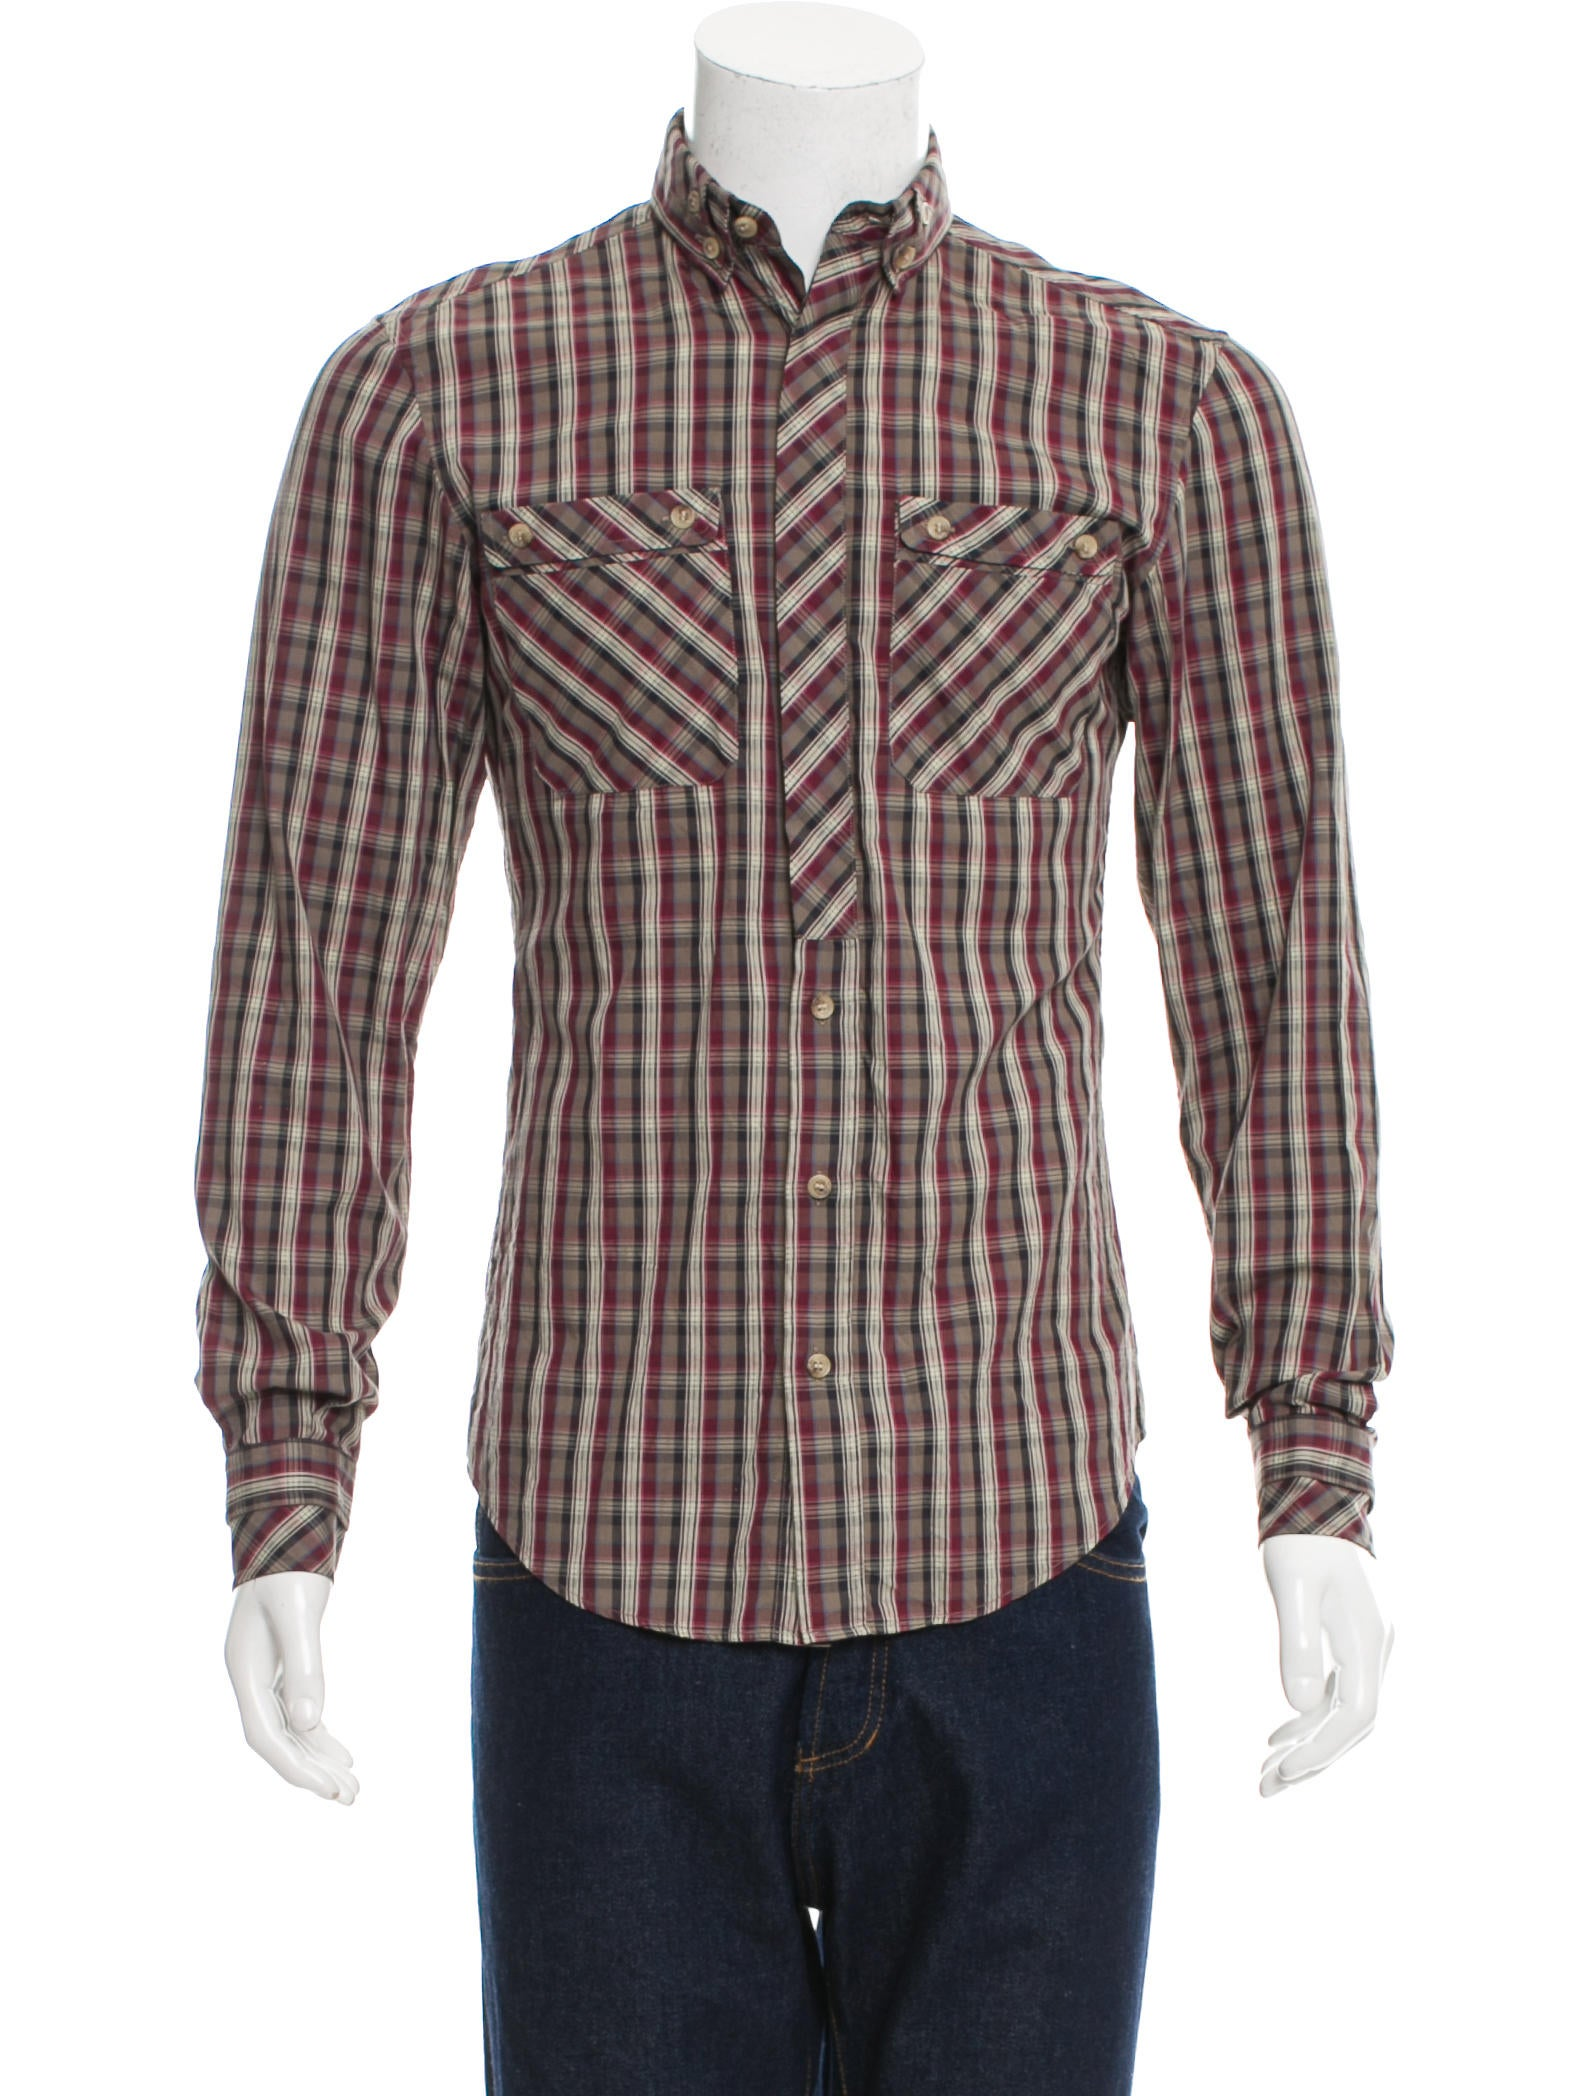 Find great deals on eBay for womens plaid button up shirt. Shop with confidence.